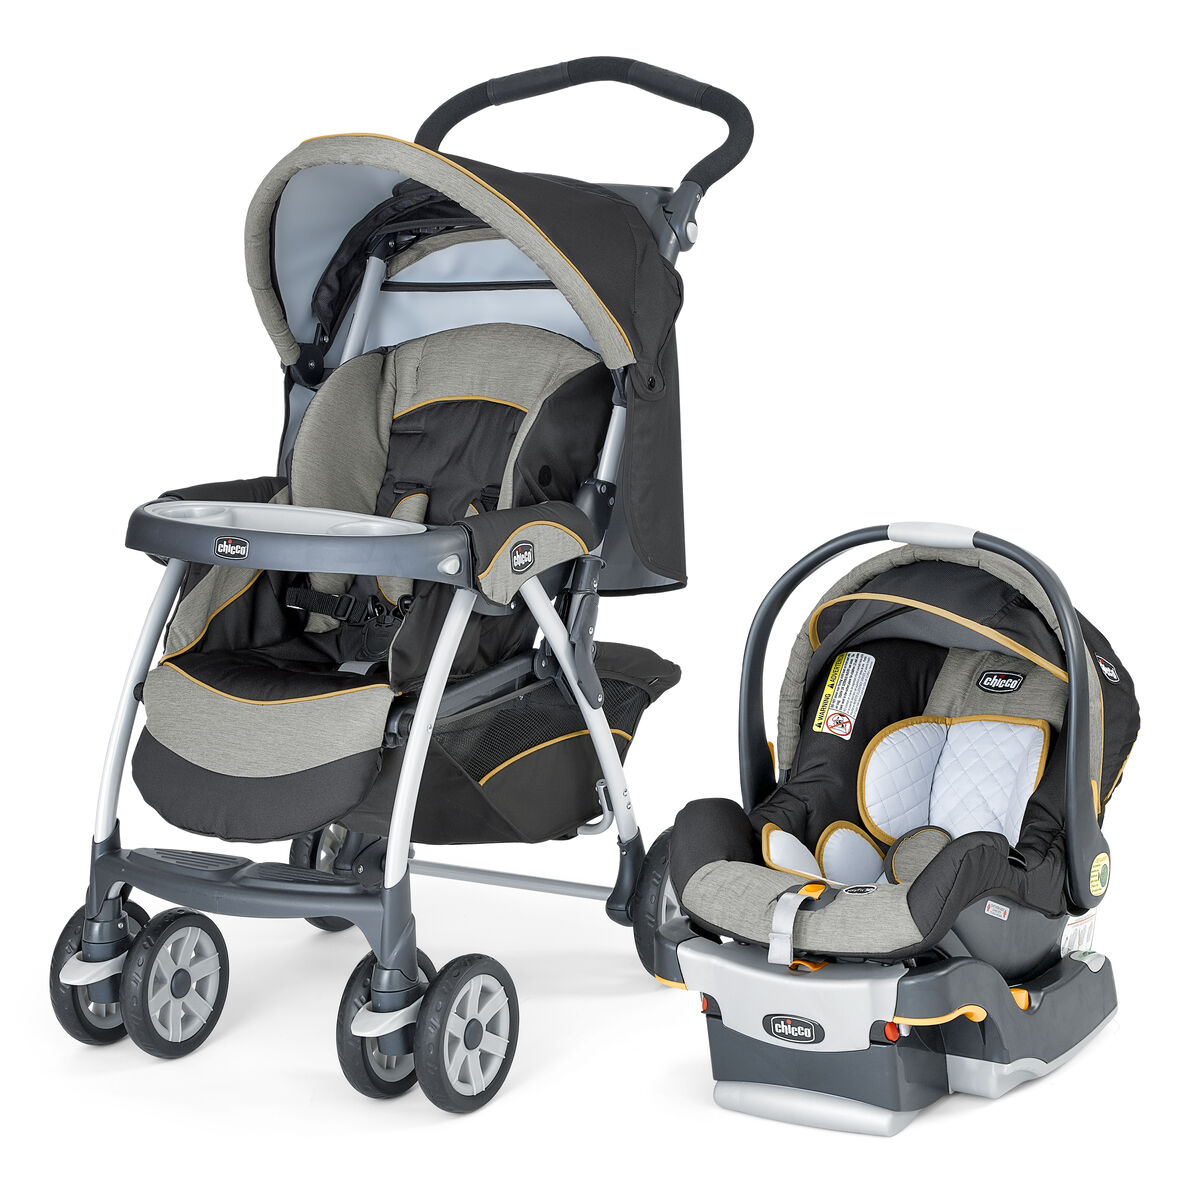 Chicco Cortina Keyfit 30 Travel System Sedona